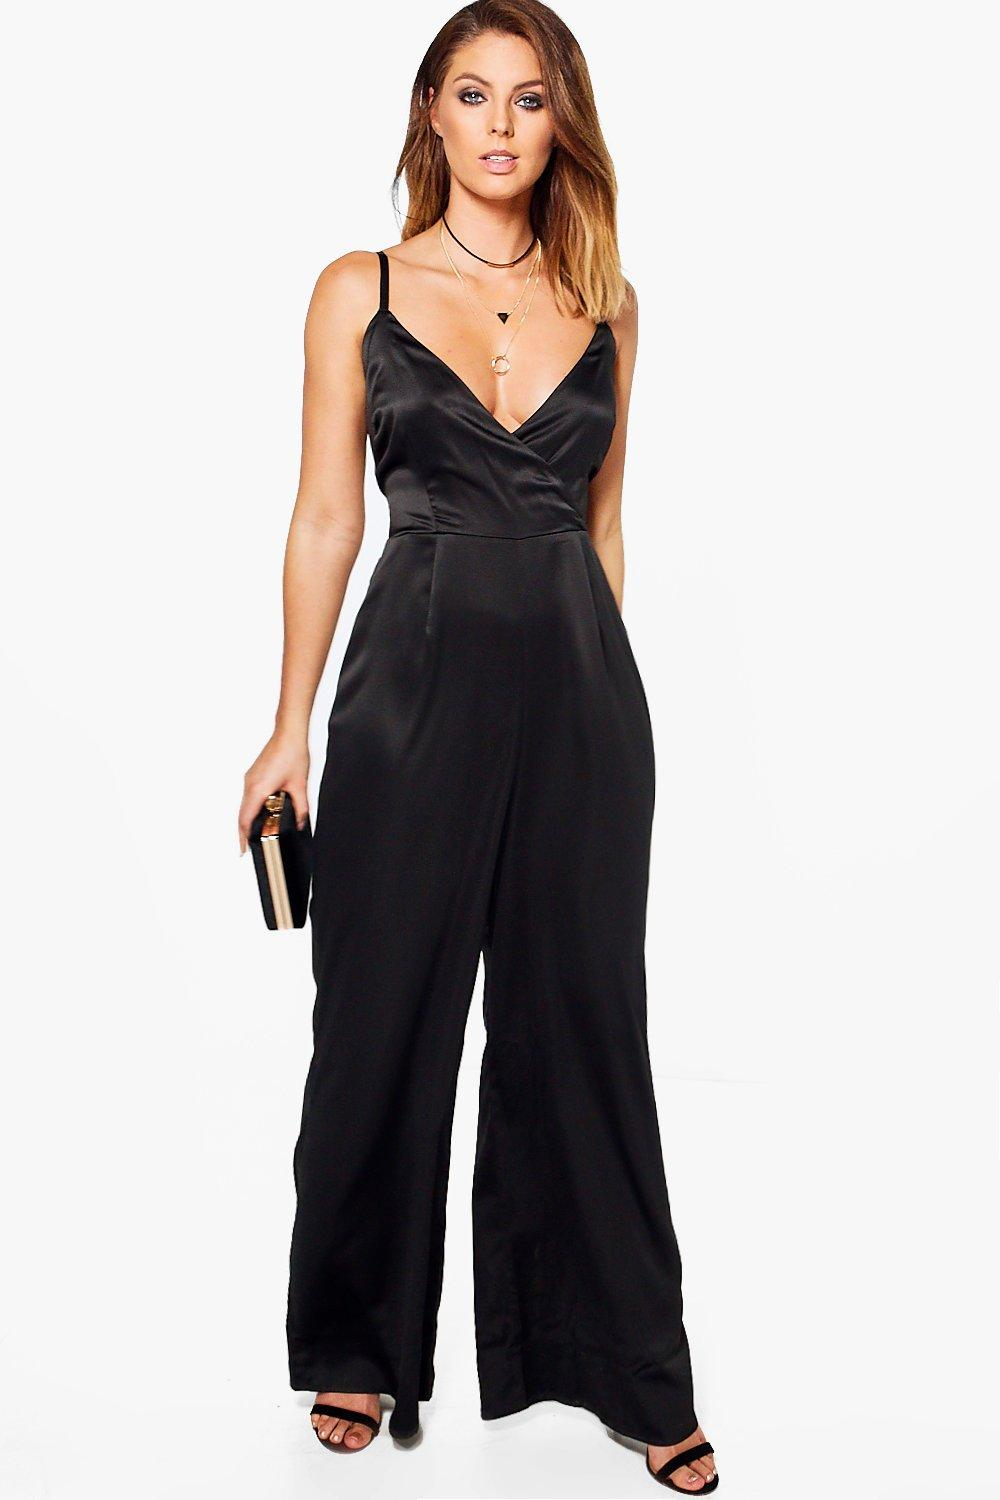 Shop rompers online